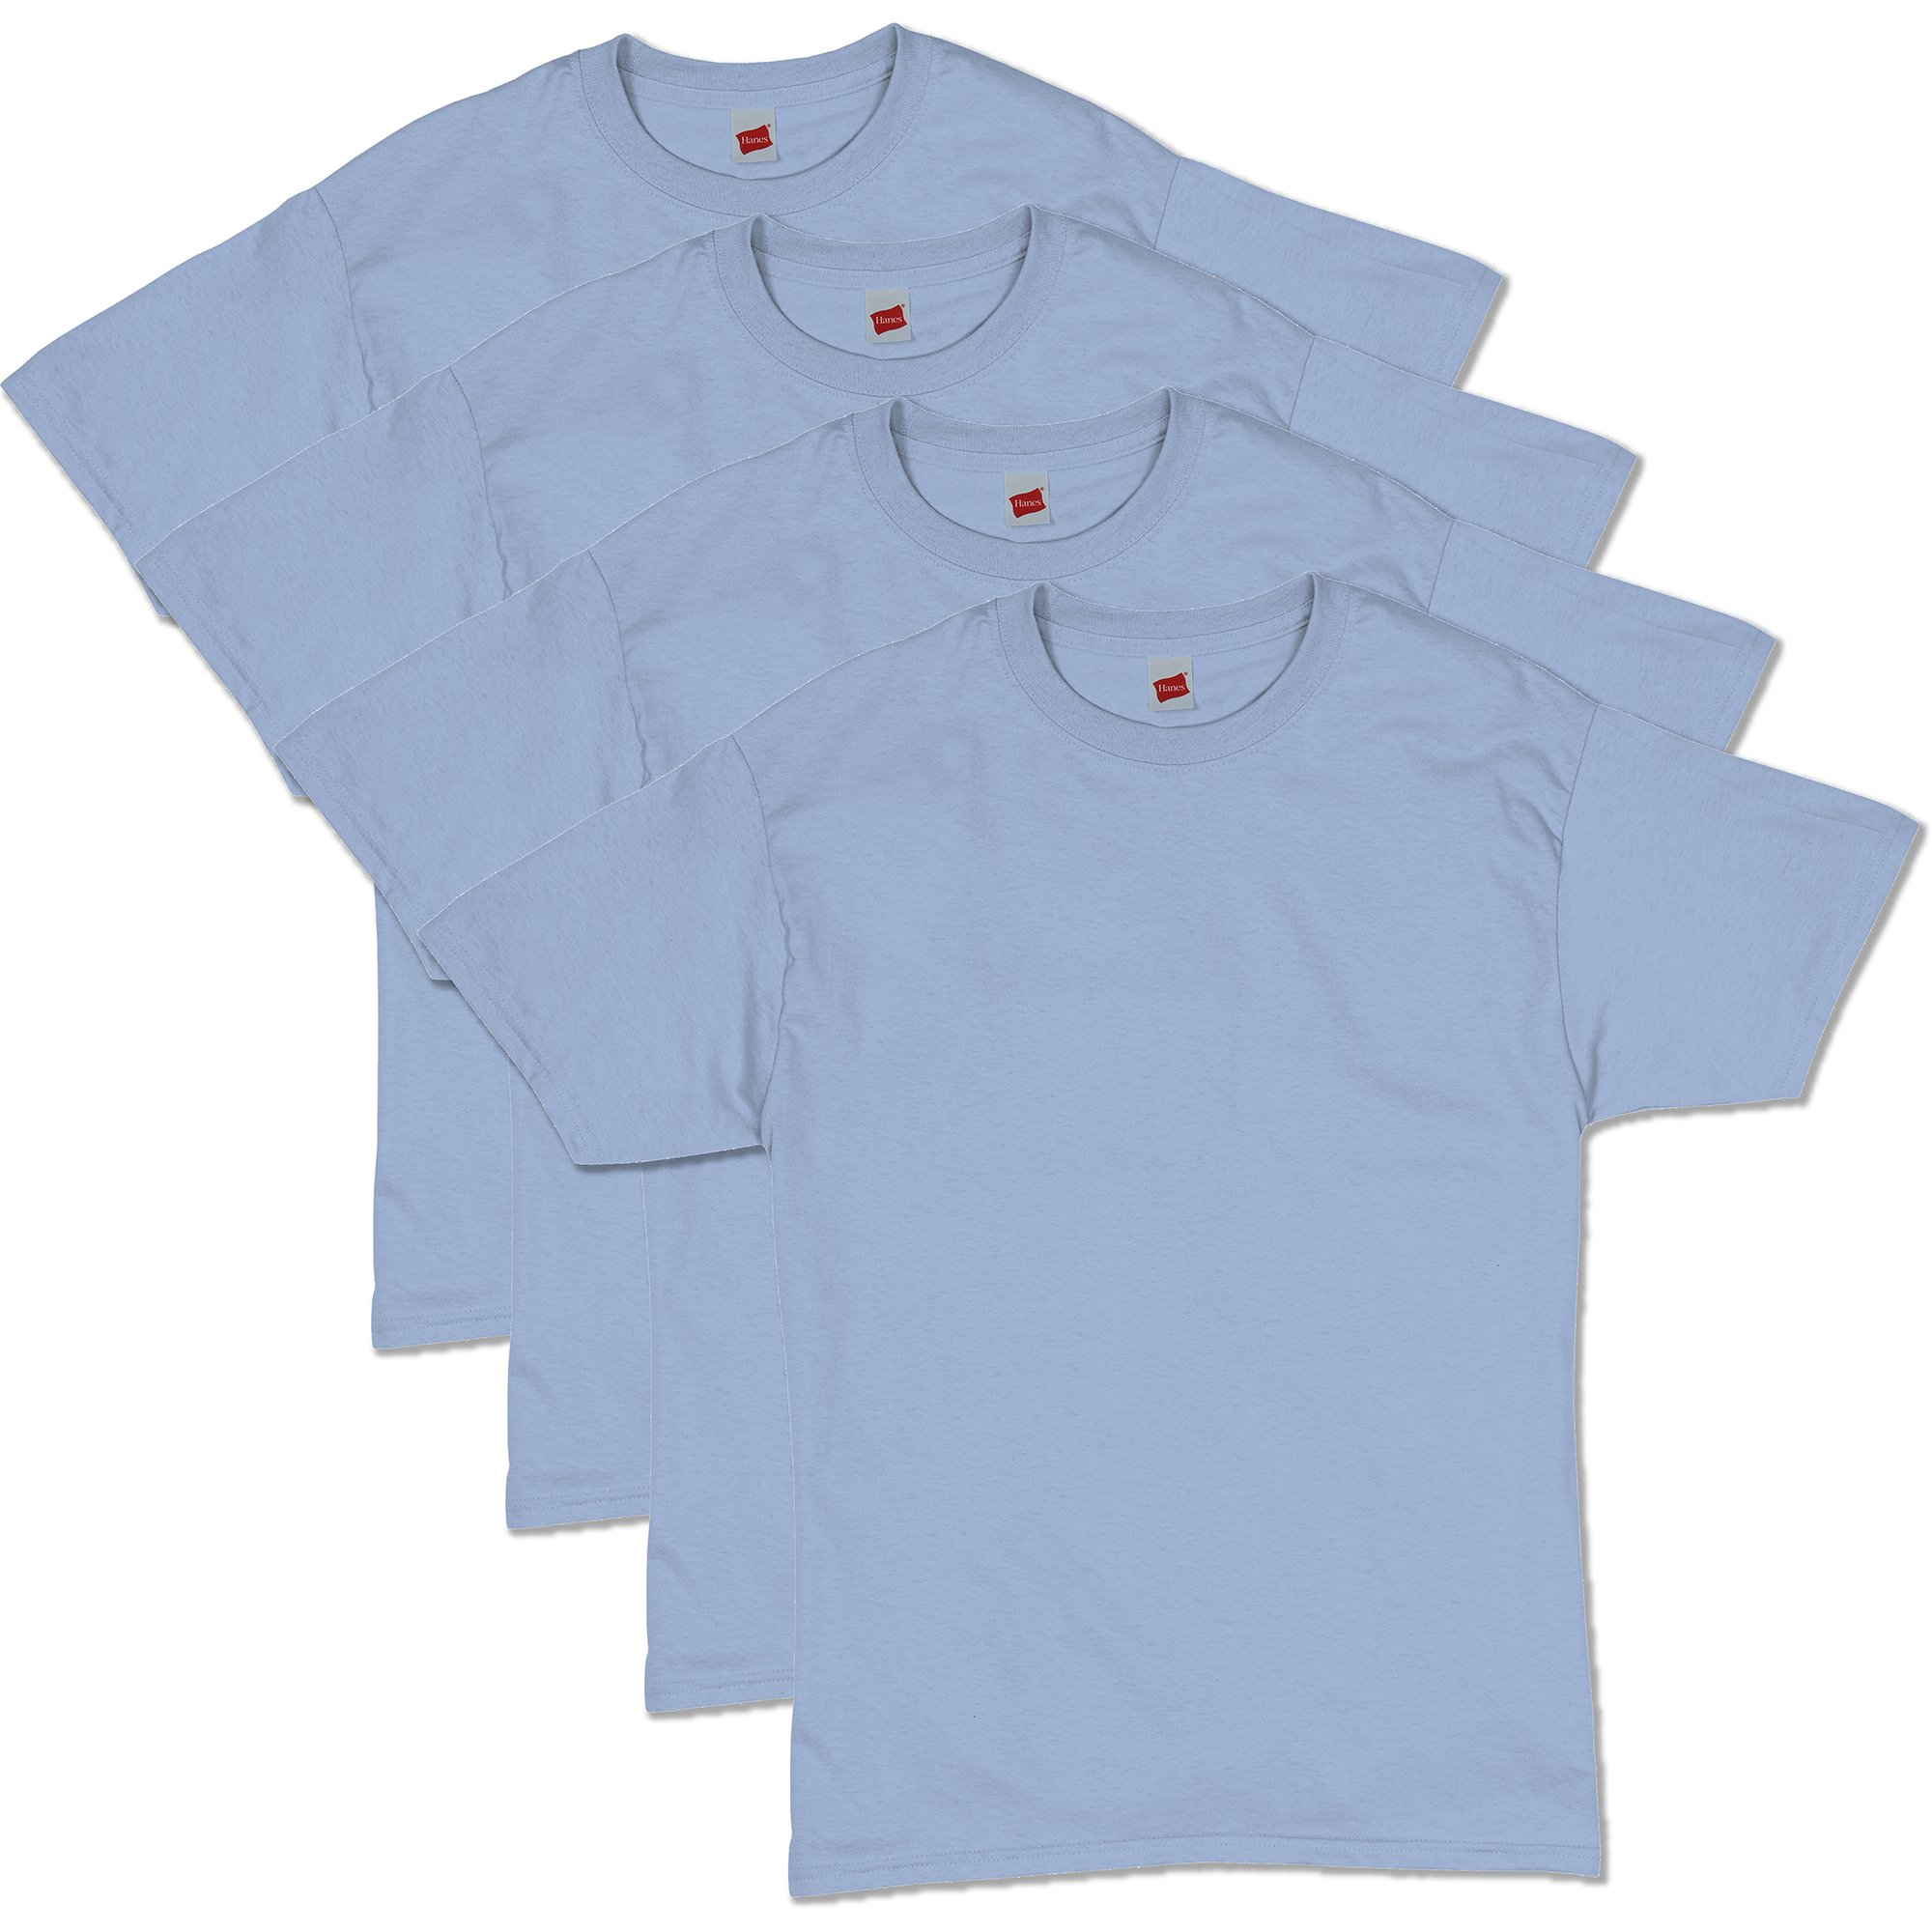 Hanes Men's Comfortsoft T-Shirt (Pack Of 4),Light Blue,Large by Hanes